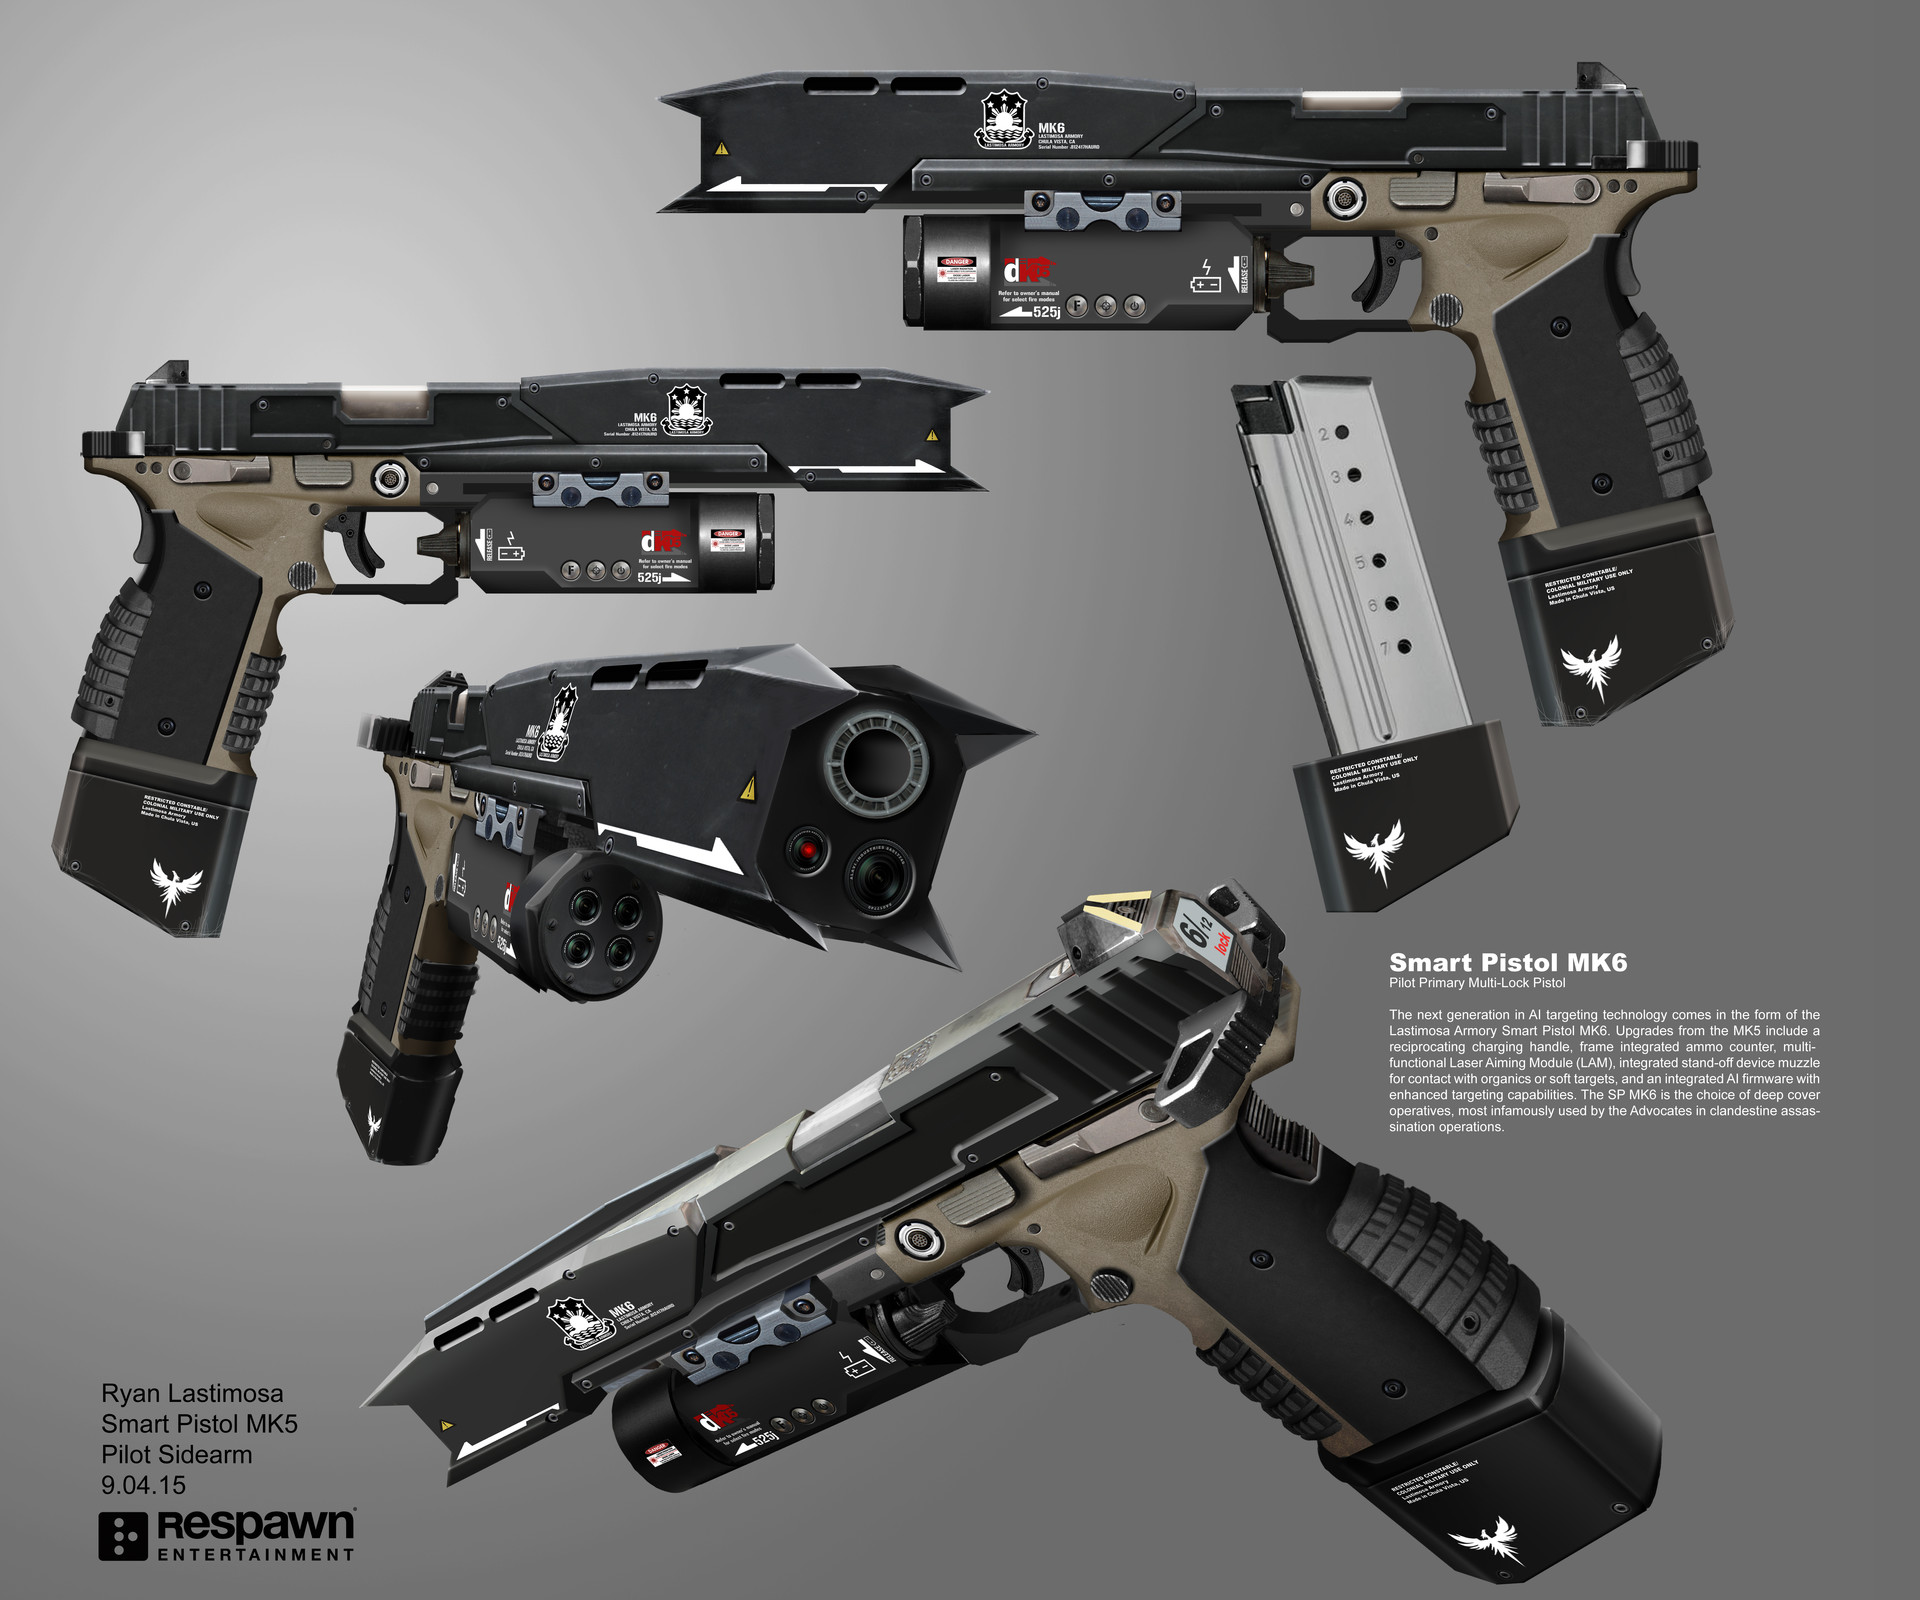 Smart Pistol MK6 | Titanfall Wiki | FANDOM powered by Wikia